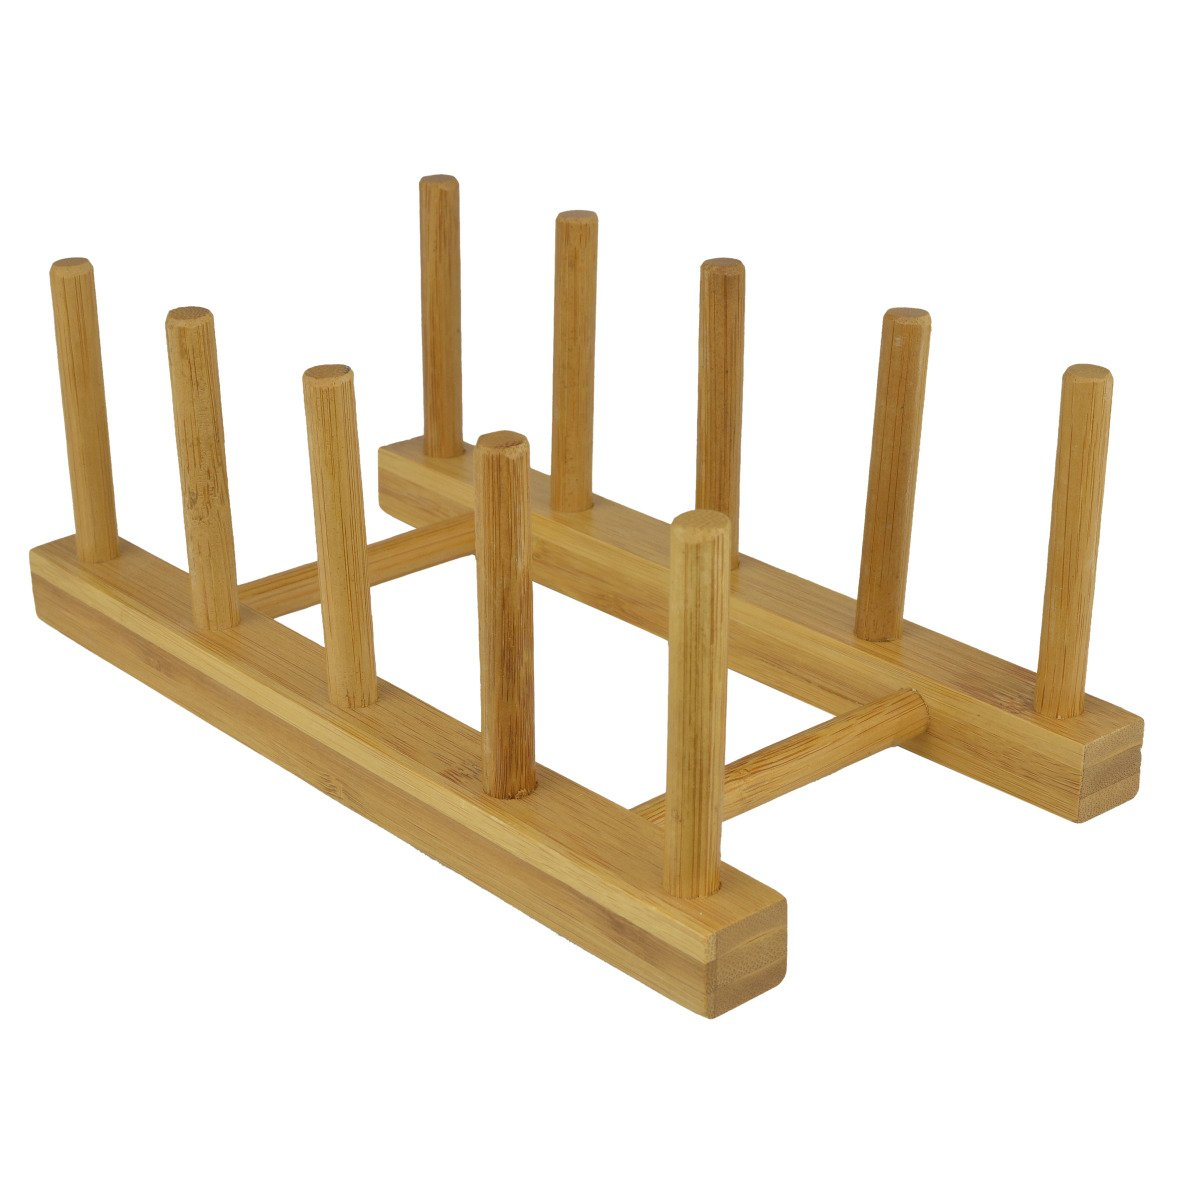 Eco Friendly Bamboo Wood Plates / Pots / Pans / Cups Dish Drying Rack Drainer Storage Organizer - MyGift